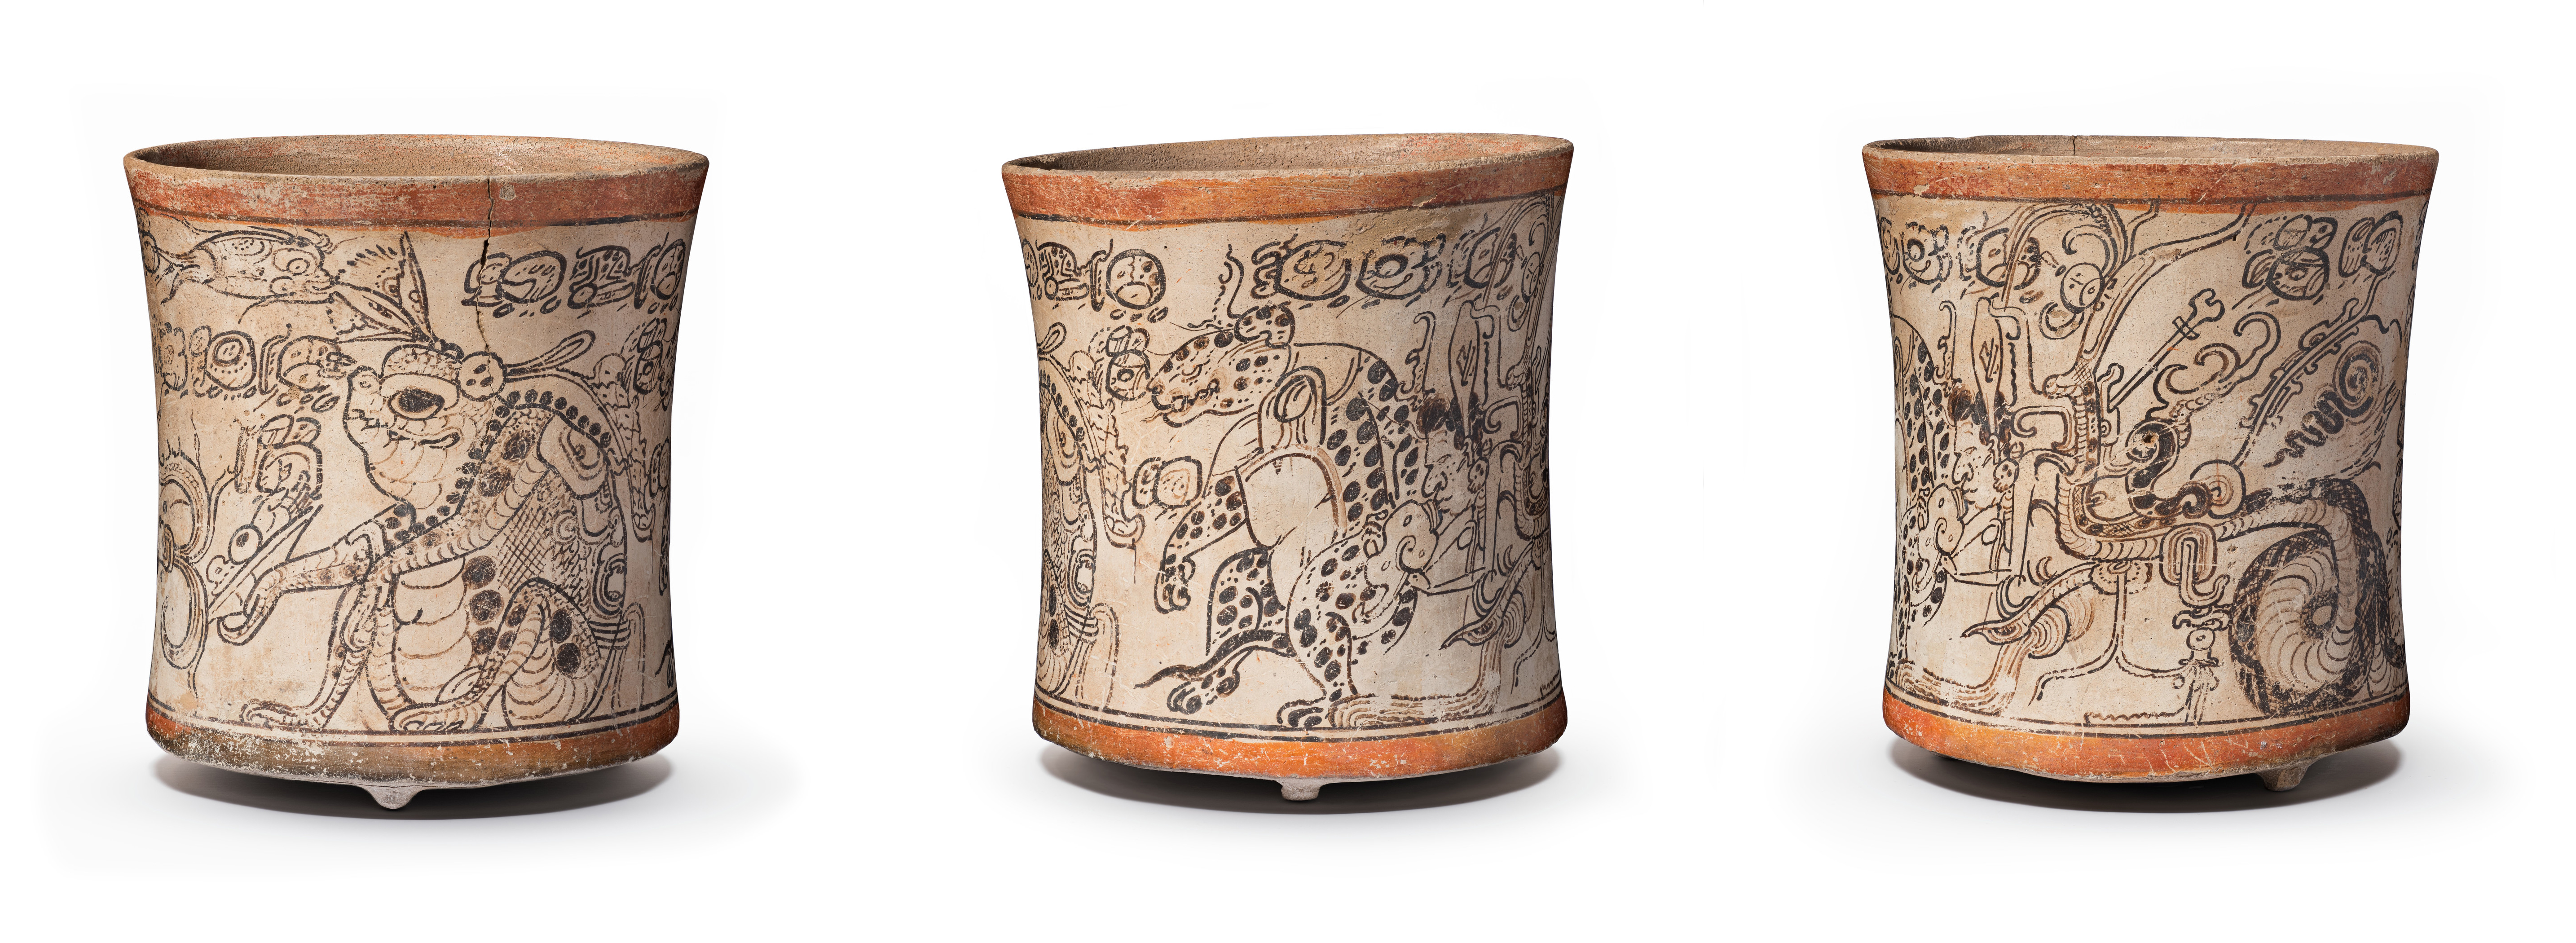 Drinking vessel depicting Otherworldly Toad, Jaguar, and Serpent, Maya, 650–800, Los Angeles County Museum of Art, gift of the 2006 Collectors Committee, photo © Museum Associates/LACMA. Three views highlighting the three personages depicted on the vase's surface.